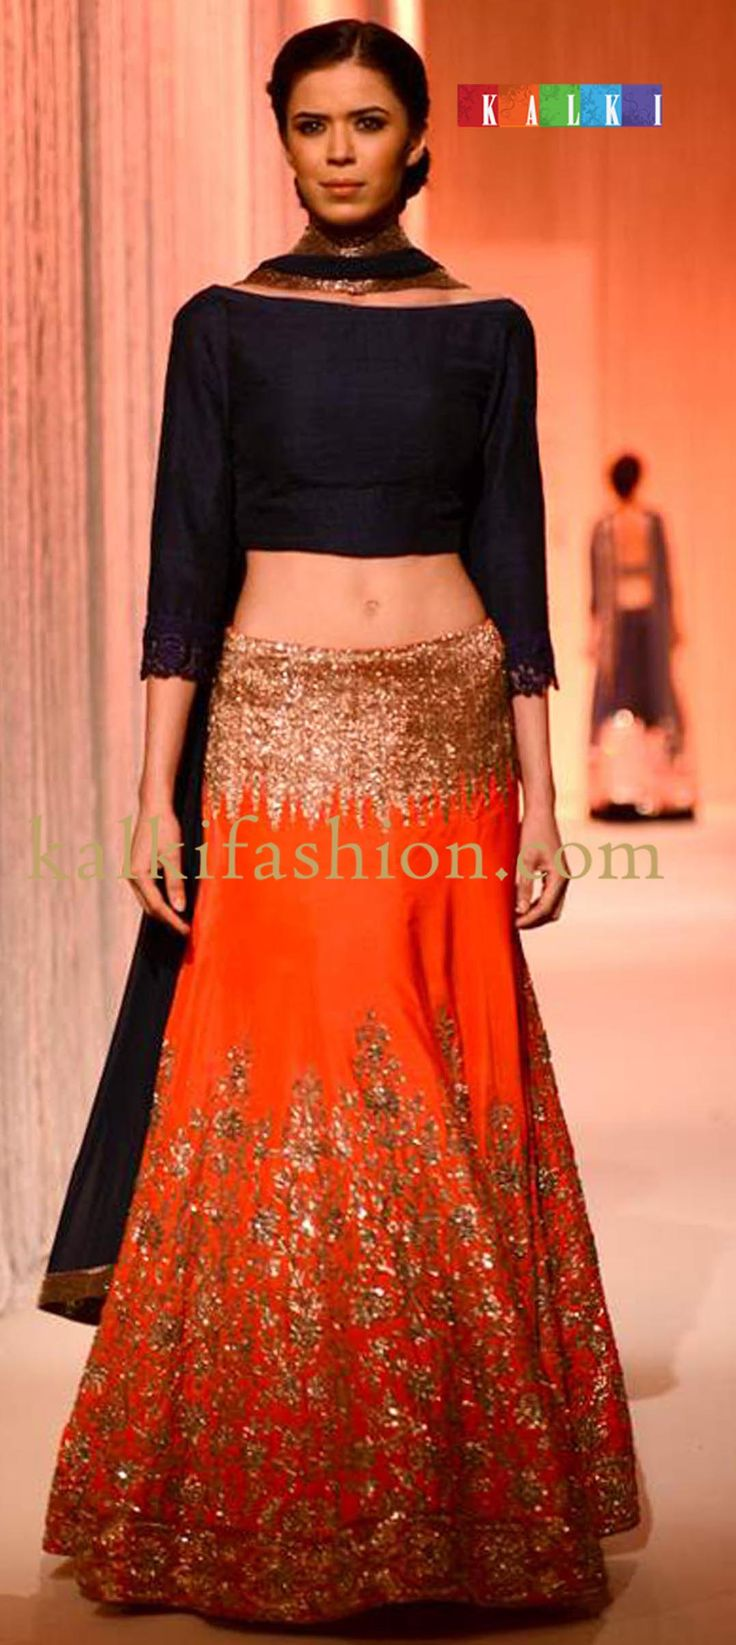 best lehnga images on pinterest india fashion indian clothes